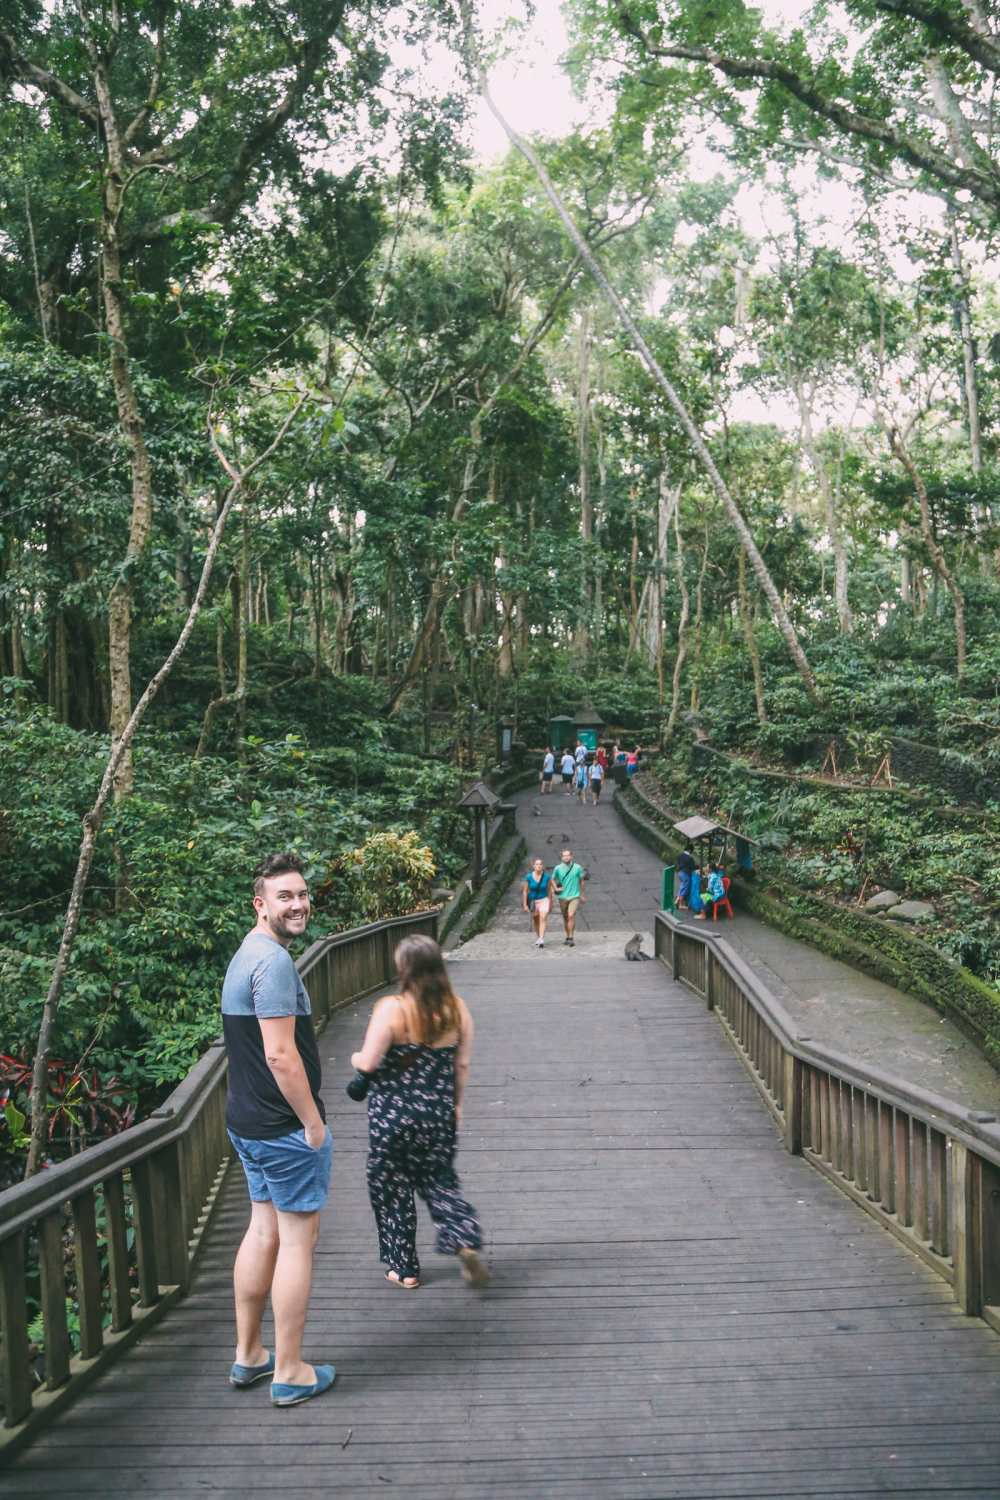 Ubud Monkey Forest In Bali - Things To Know Before You Visit (4)